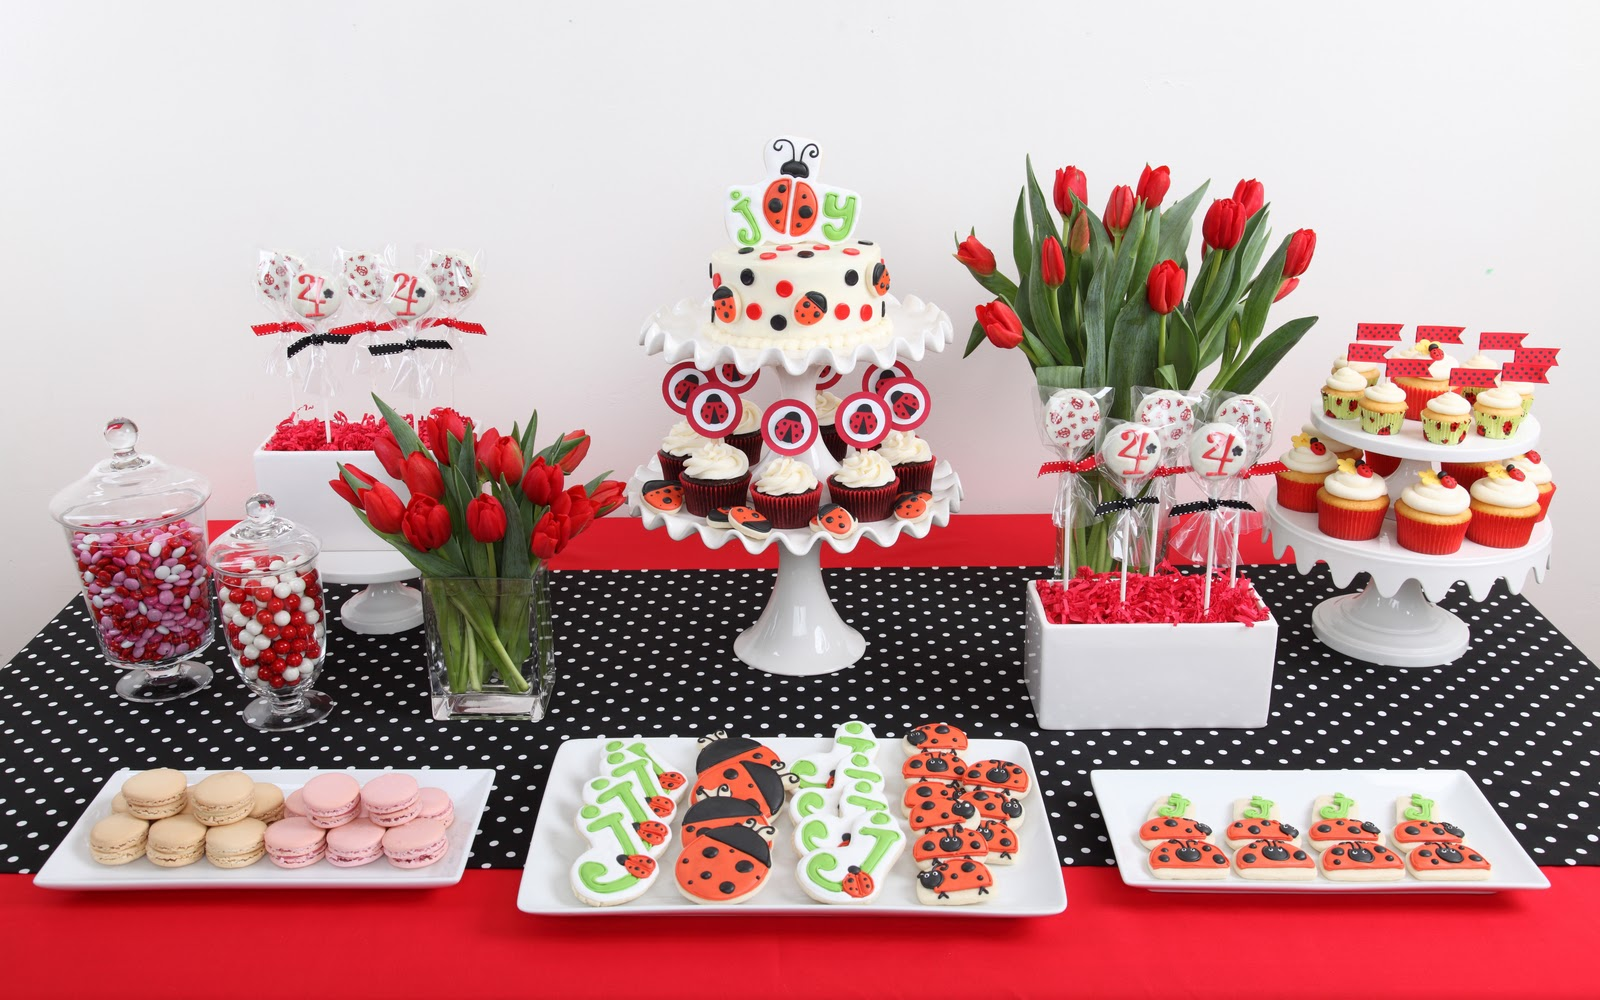 I Prepared A Dessert Table Full Of Cute Red Black And White Treats With Few Pink Green Touches